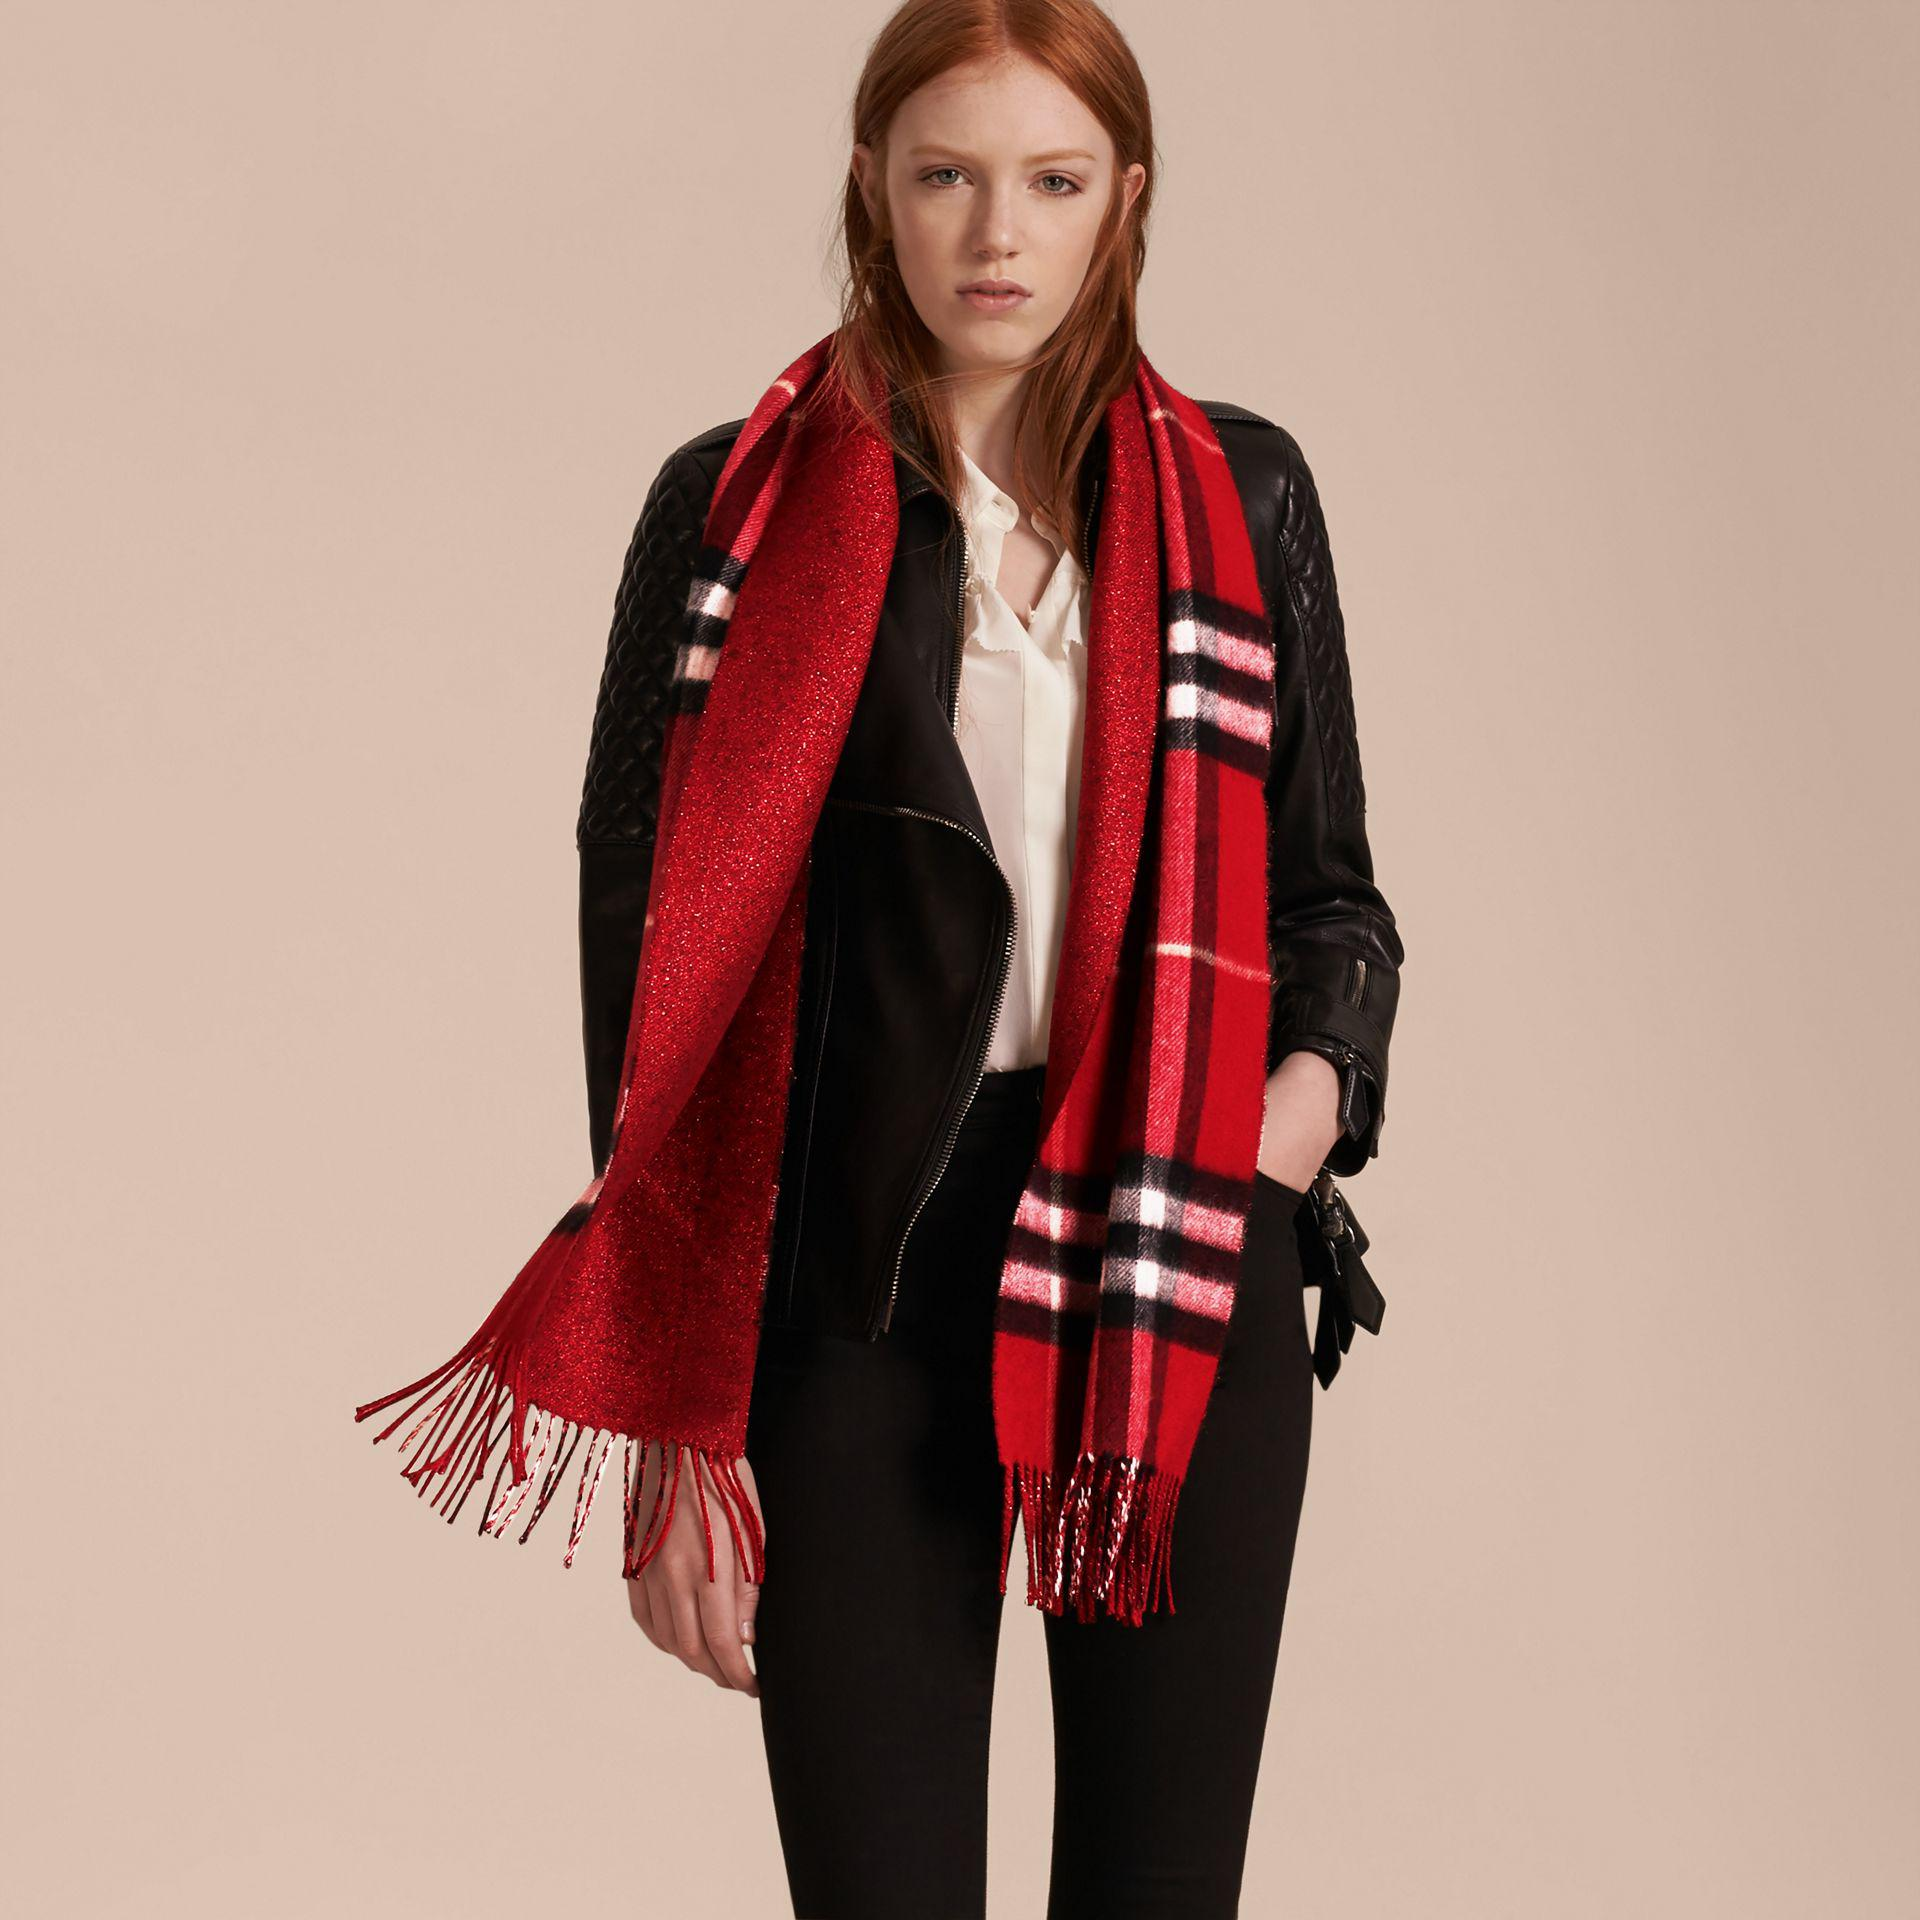 7ed6b55d55d Lyst - Burberry Reversible Metallic Check Cashmere Scarf Parade Red